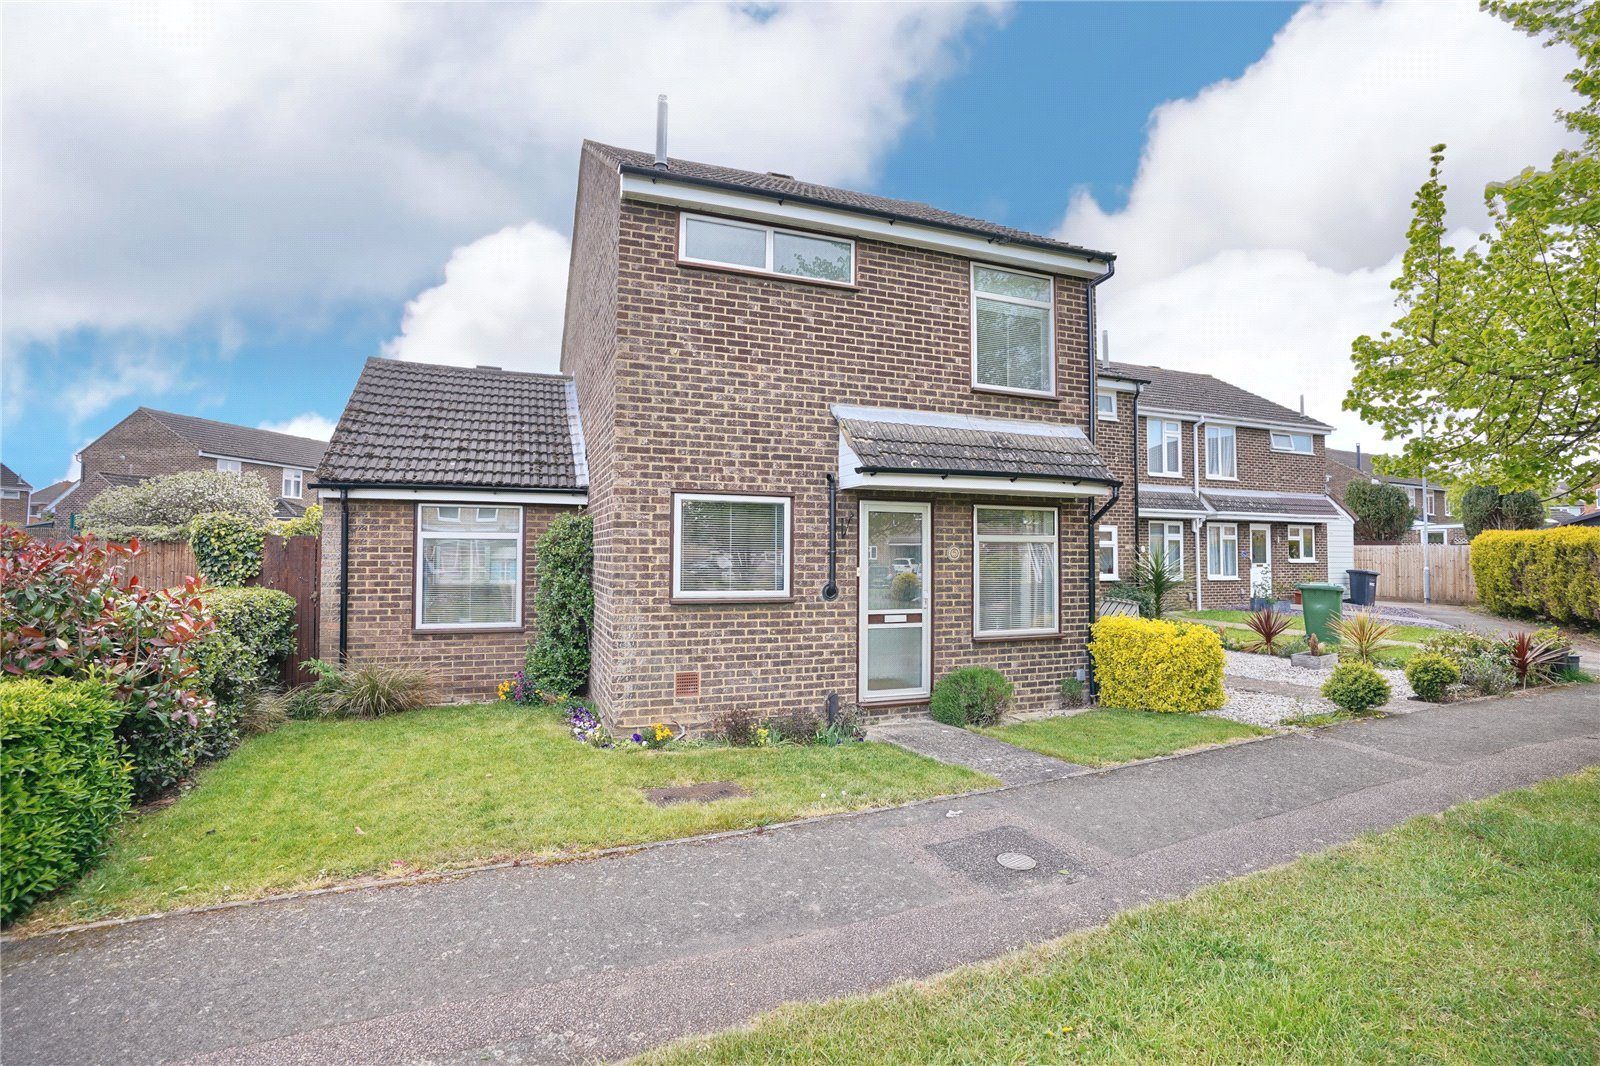 3 bed house for sale in Eaton Ford, PE19 7JN, PE19